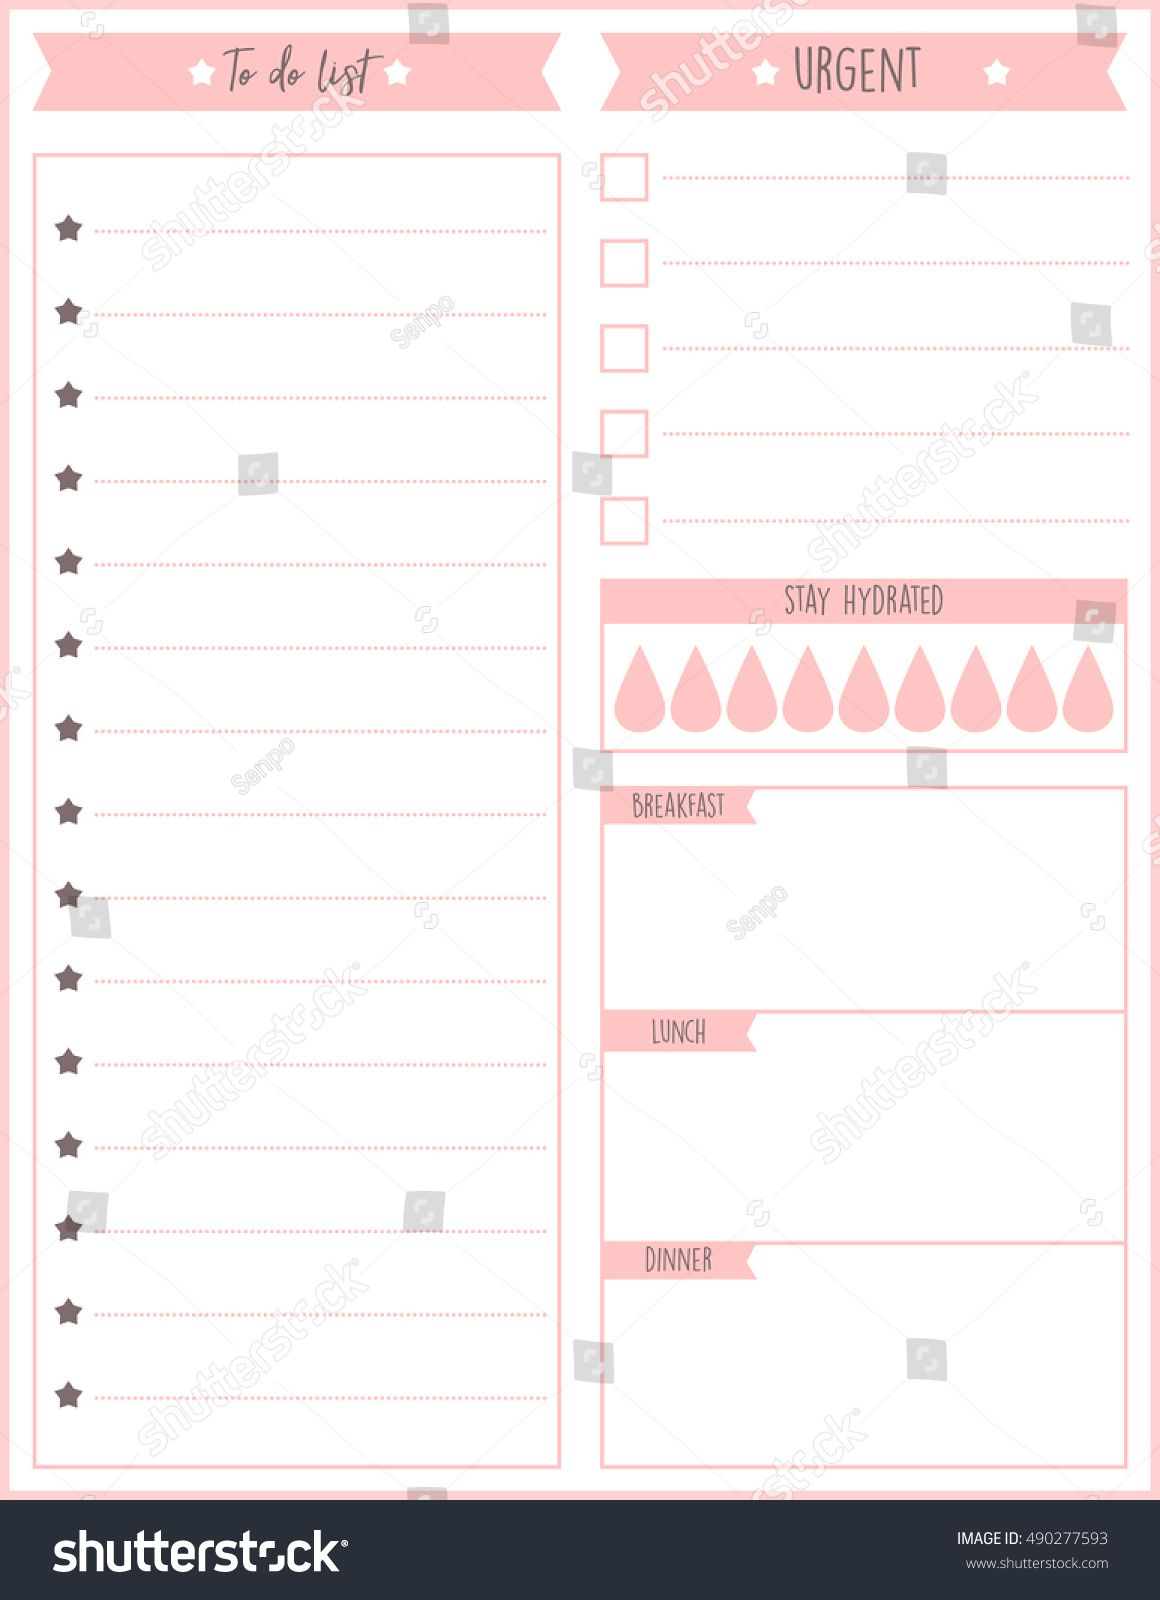 Clean Style Daily Planner Vector Template Stationery Design Cute And Simple Printable To Do List